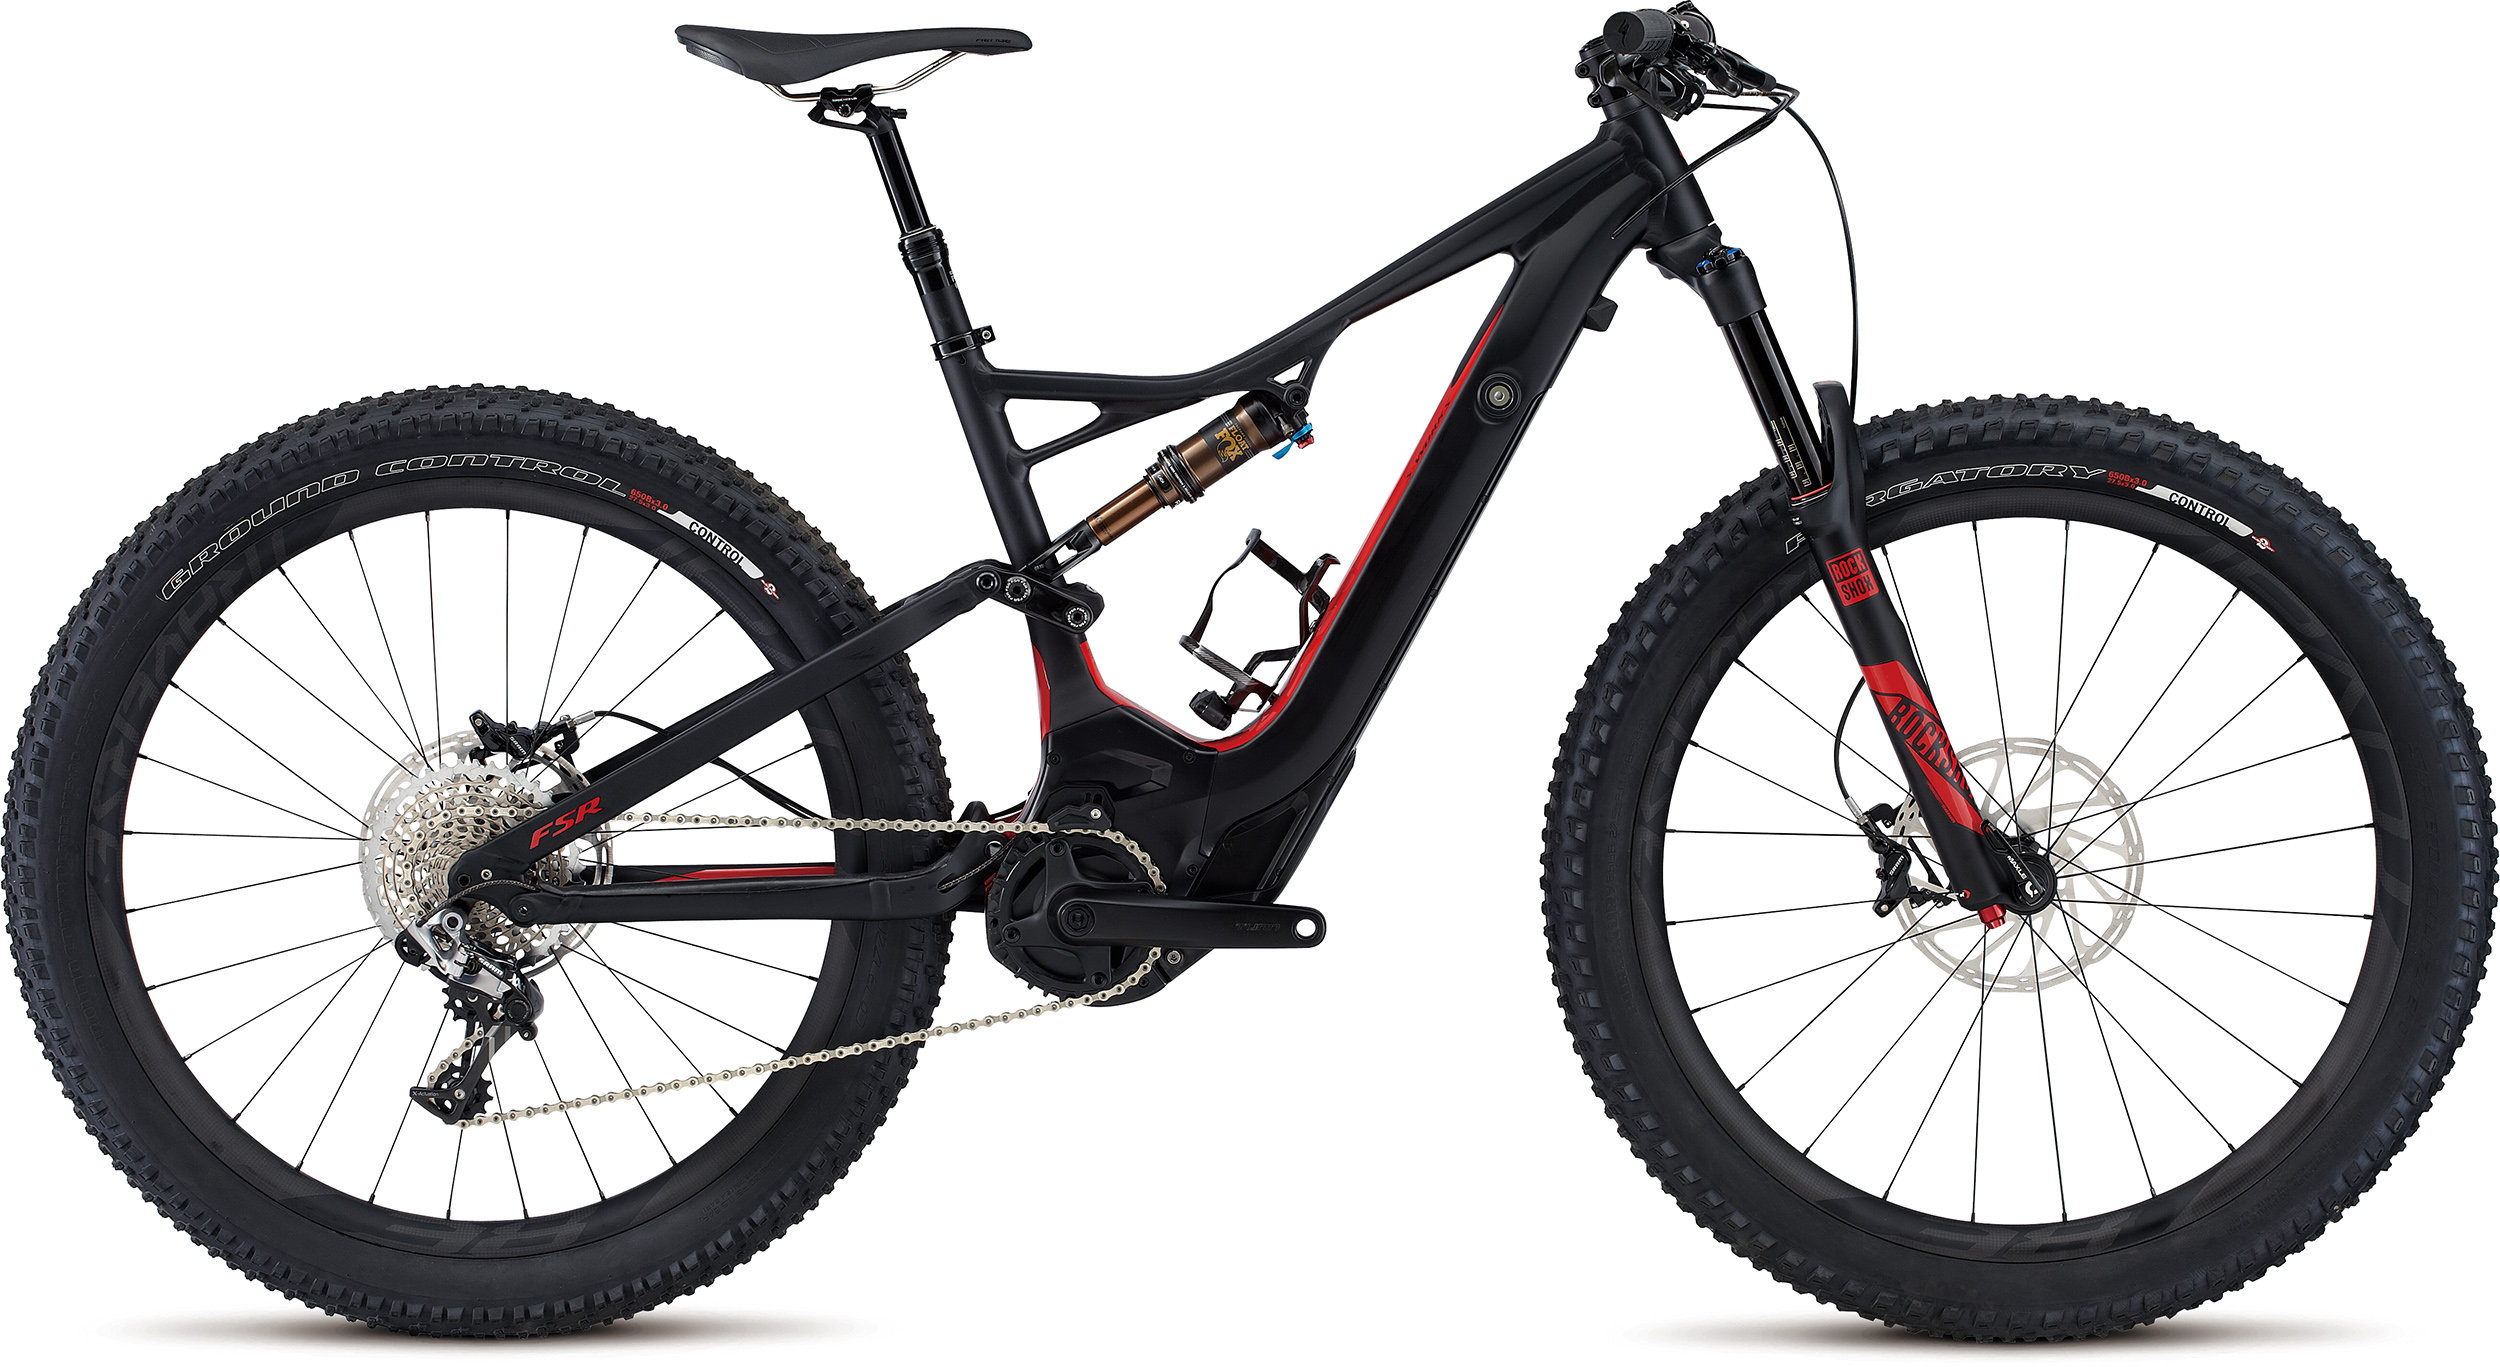 SPECIALIZED SW LEVO FSR 6FATTIE CE BLK/FLORED L - Bike Zone